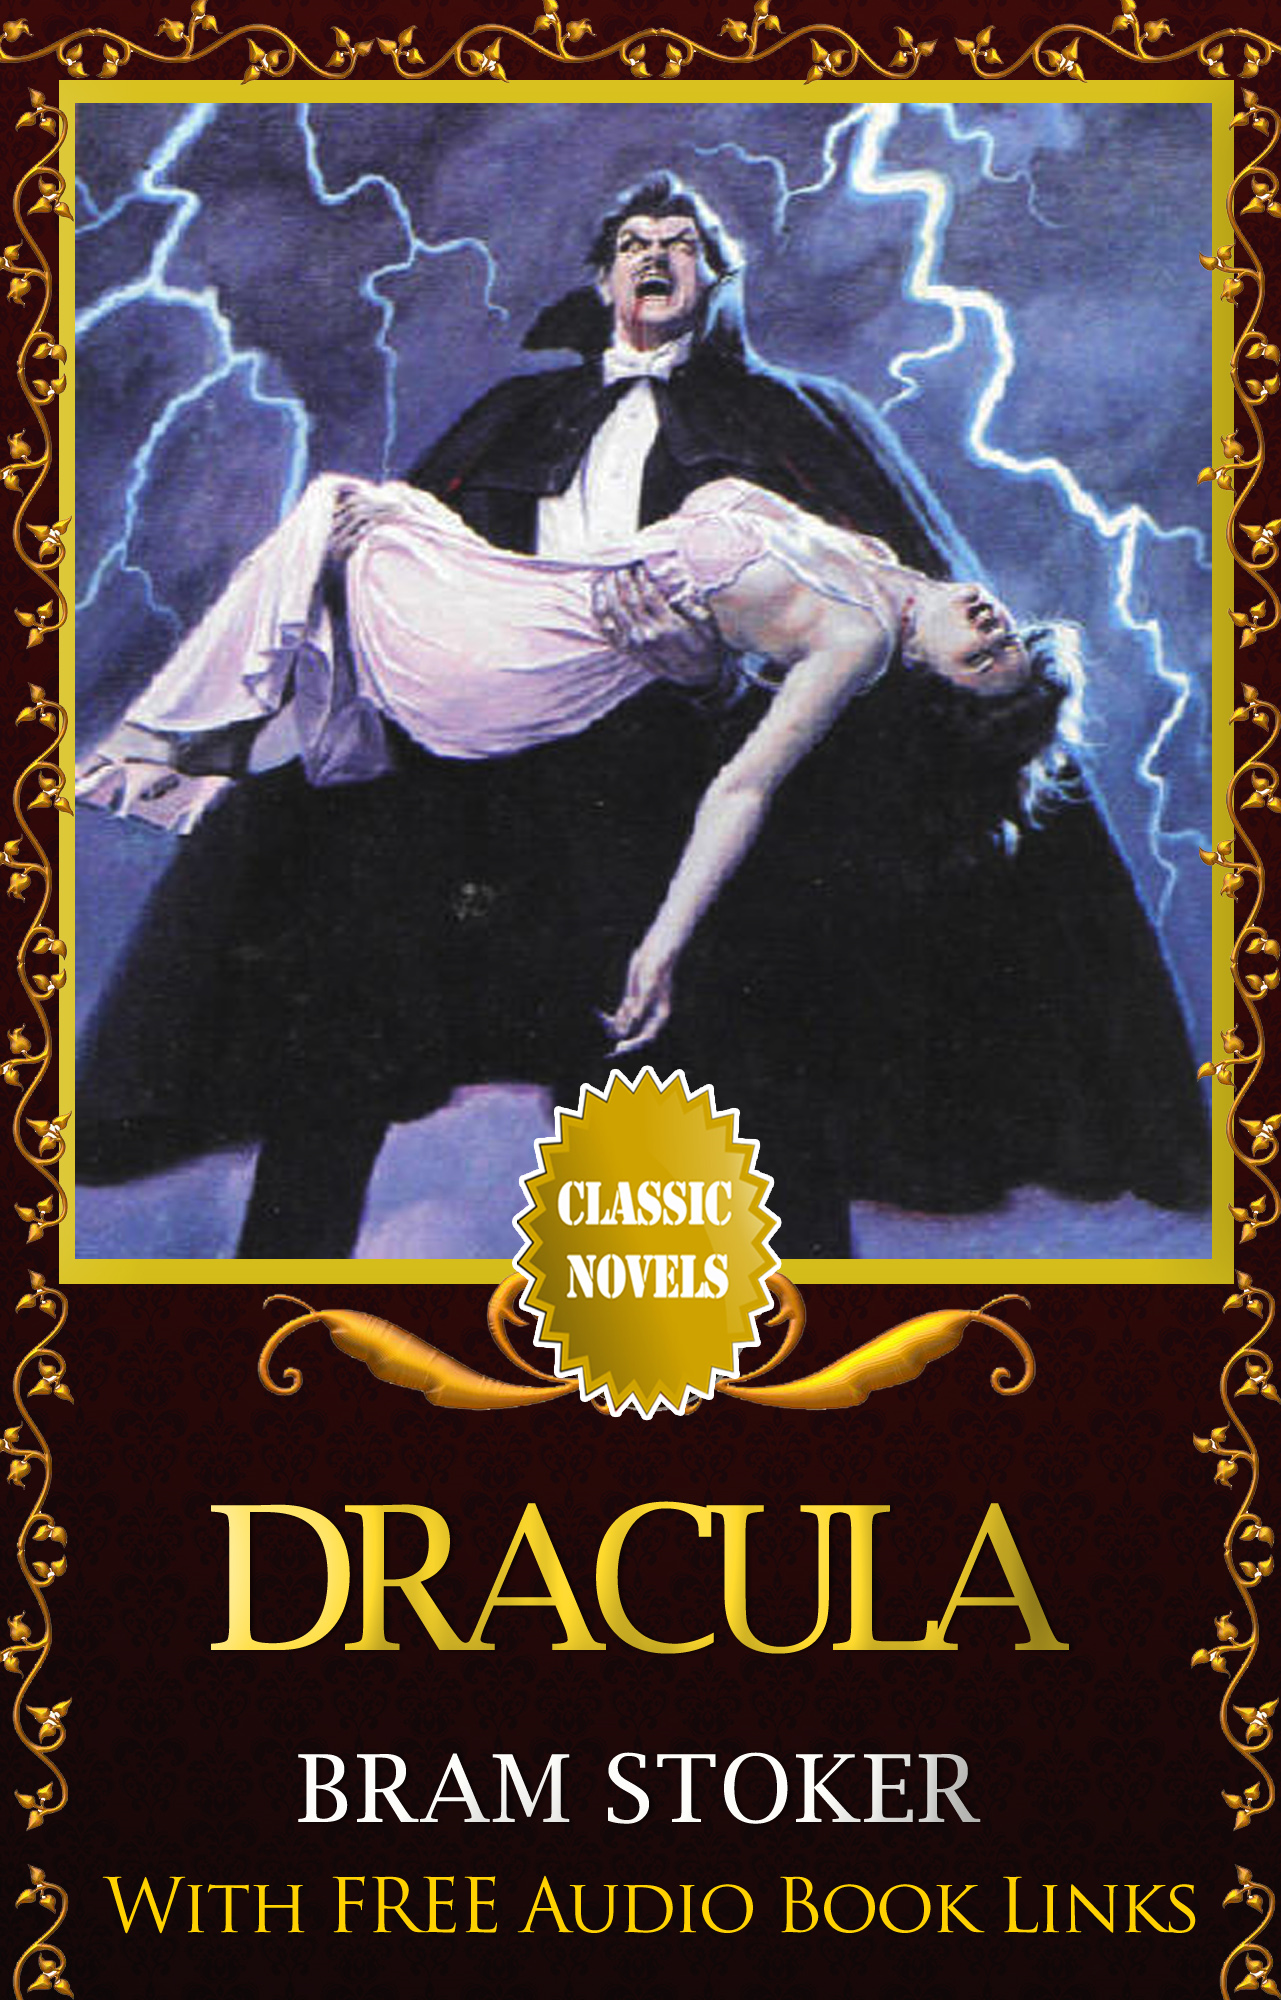 DRACULA Classic Novels: New Illustrated By: Bram Stoker